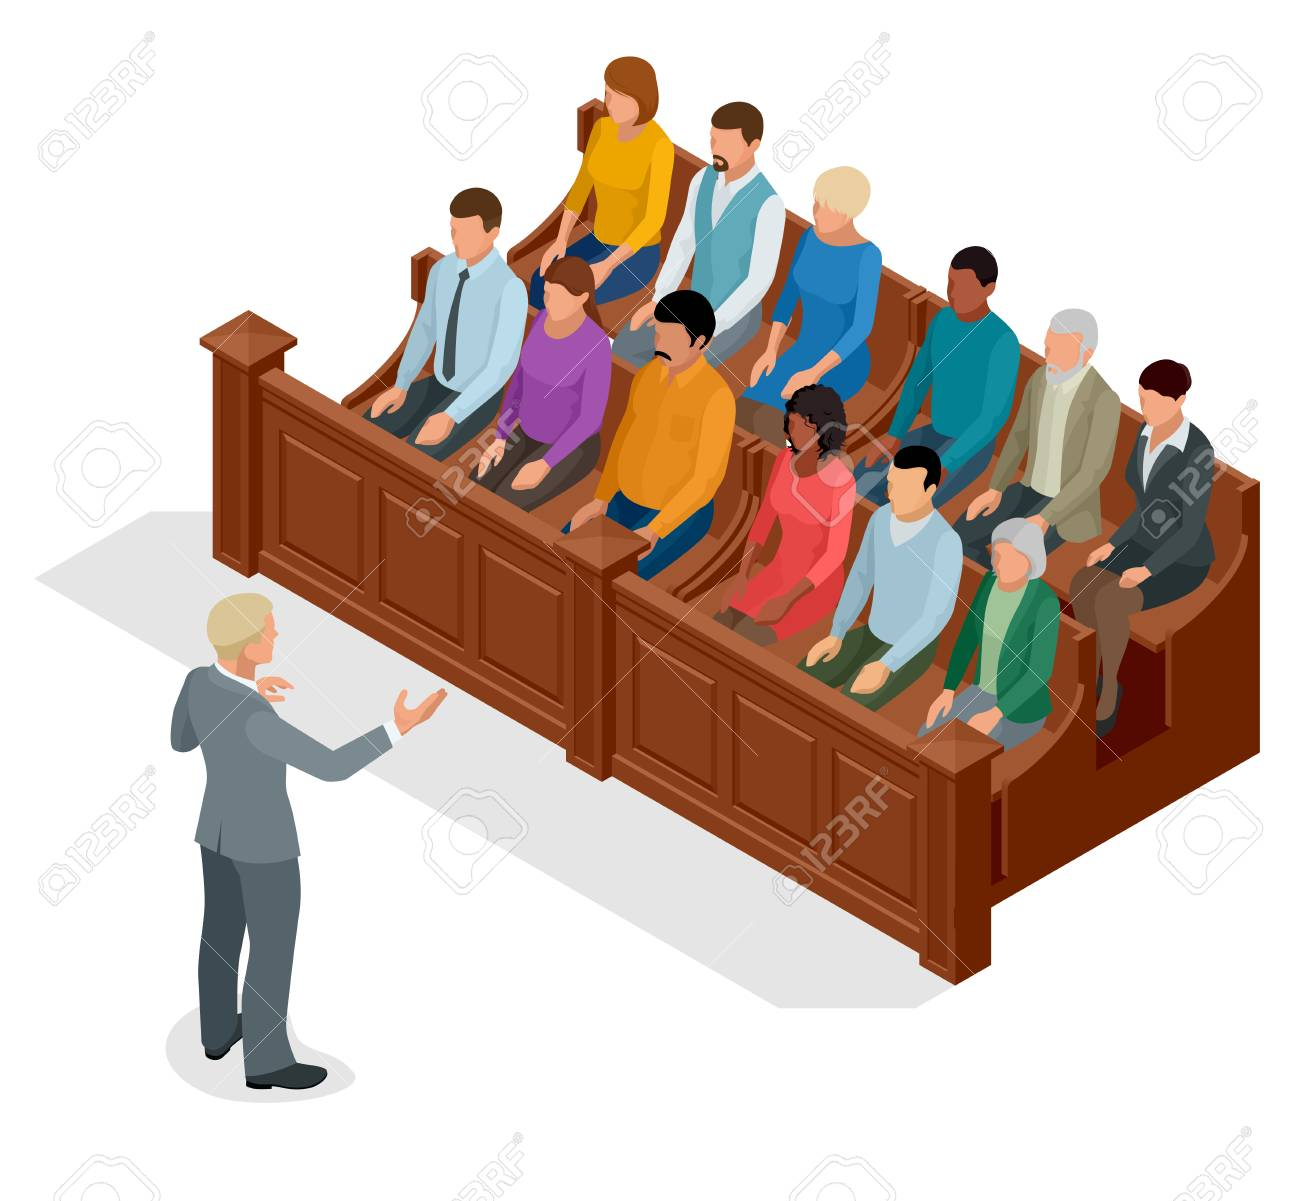 166 Courtroom free clipart.